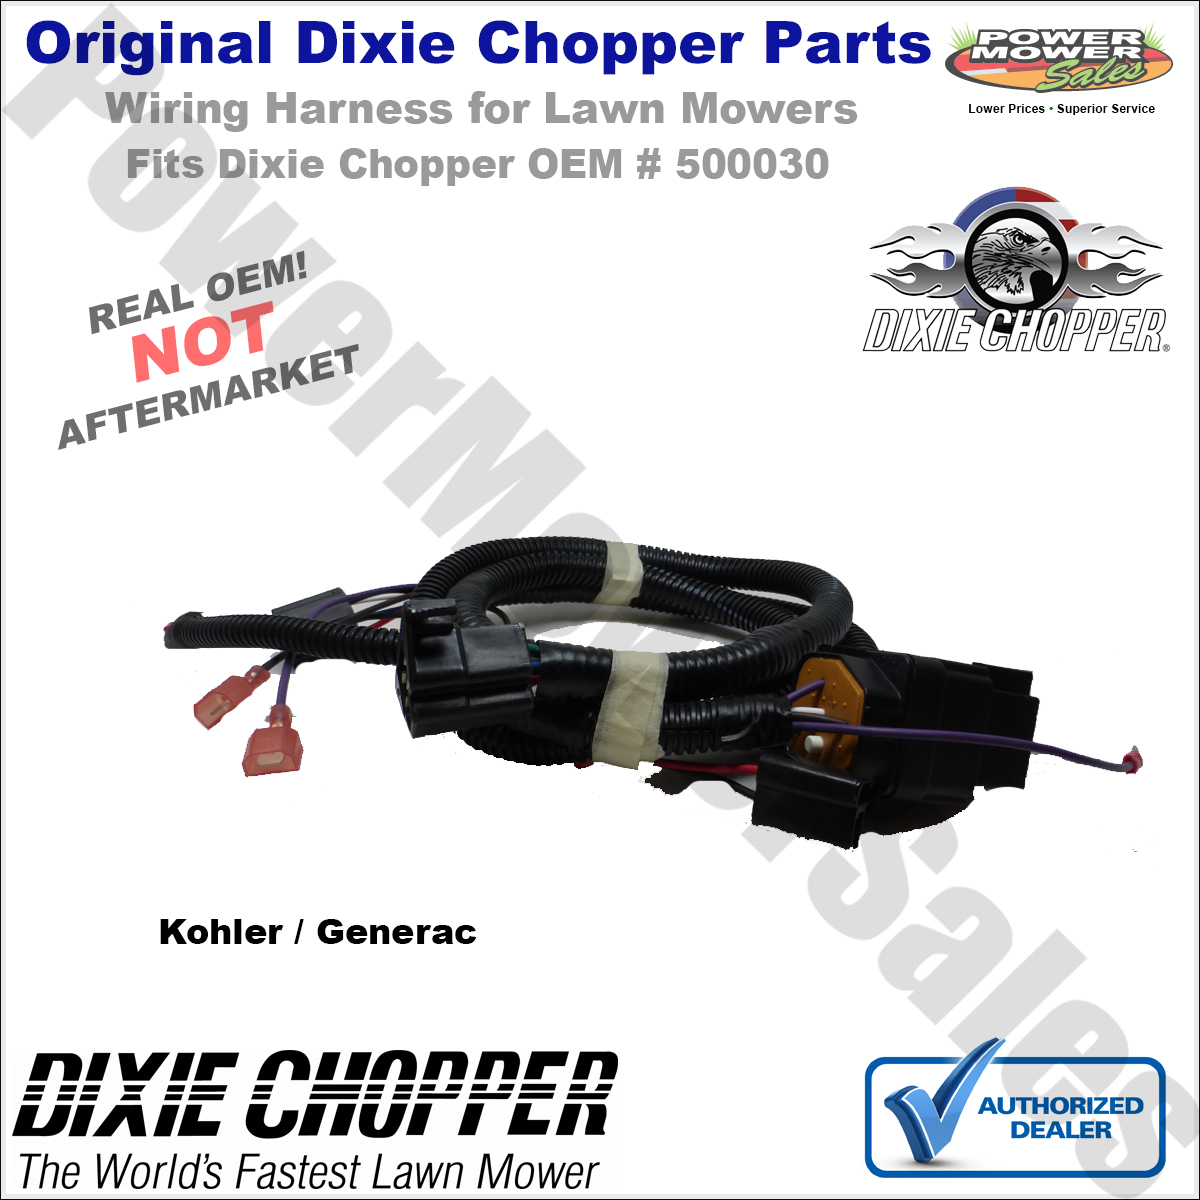 hight resolution of details about 500030 dixie chopper wiring harness for kohler and generac lawn mowers